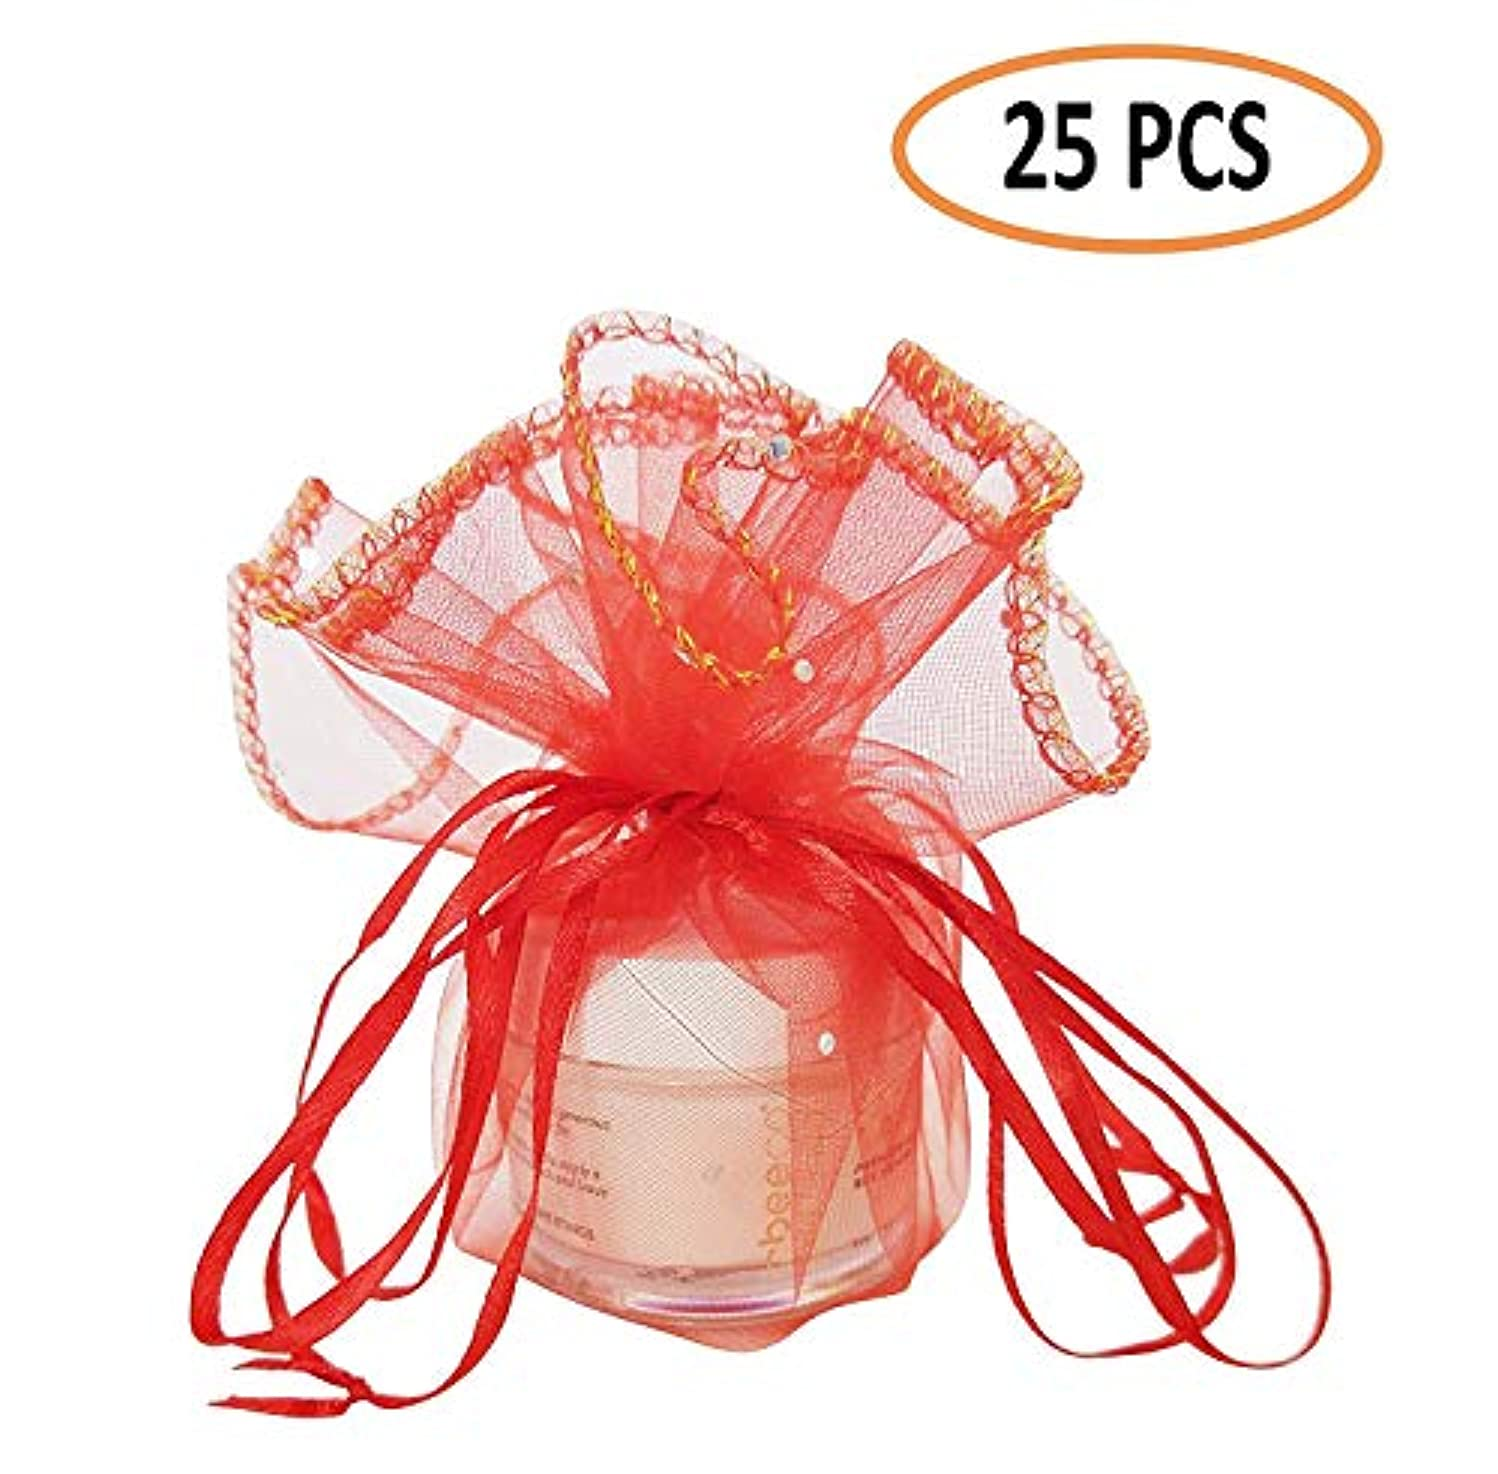 Colorful Organza Gift Bag, Special Drawstring Pouches for Travel Festival Wedding Party Favor Gift Bag with Unique Circular Design (25 PCS)